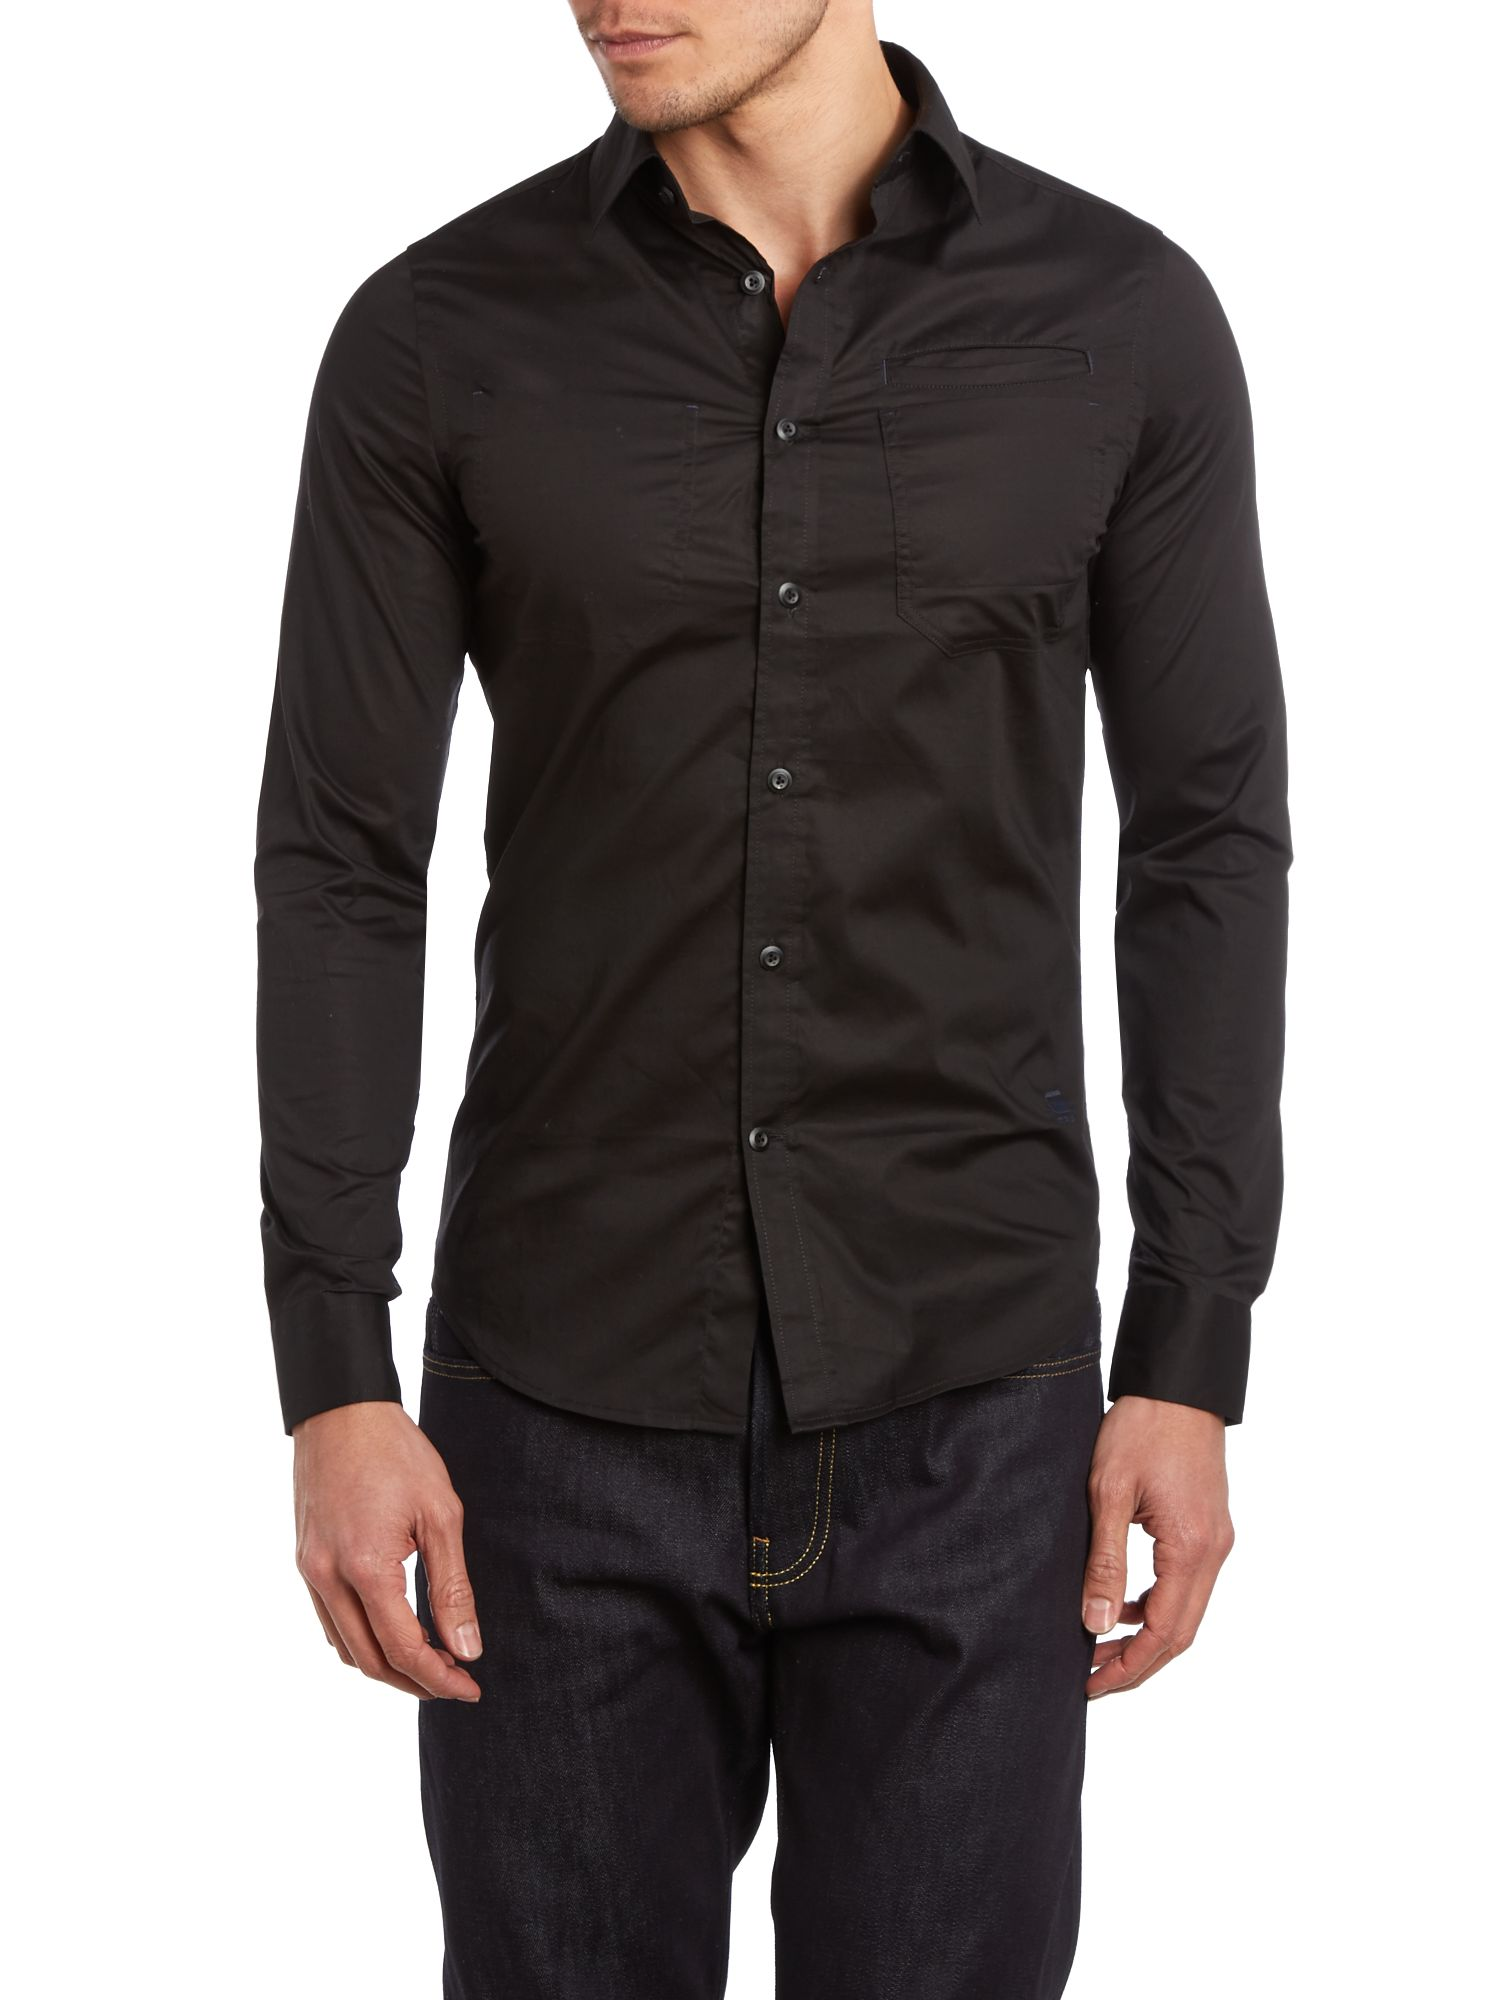 One Pocket Long Sleeve Shirt